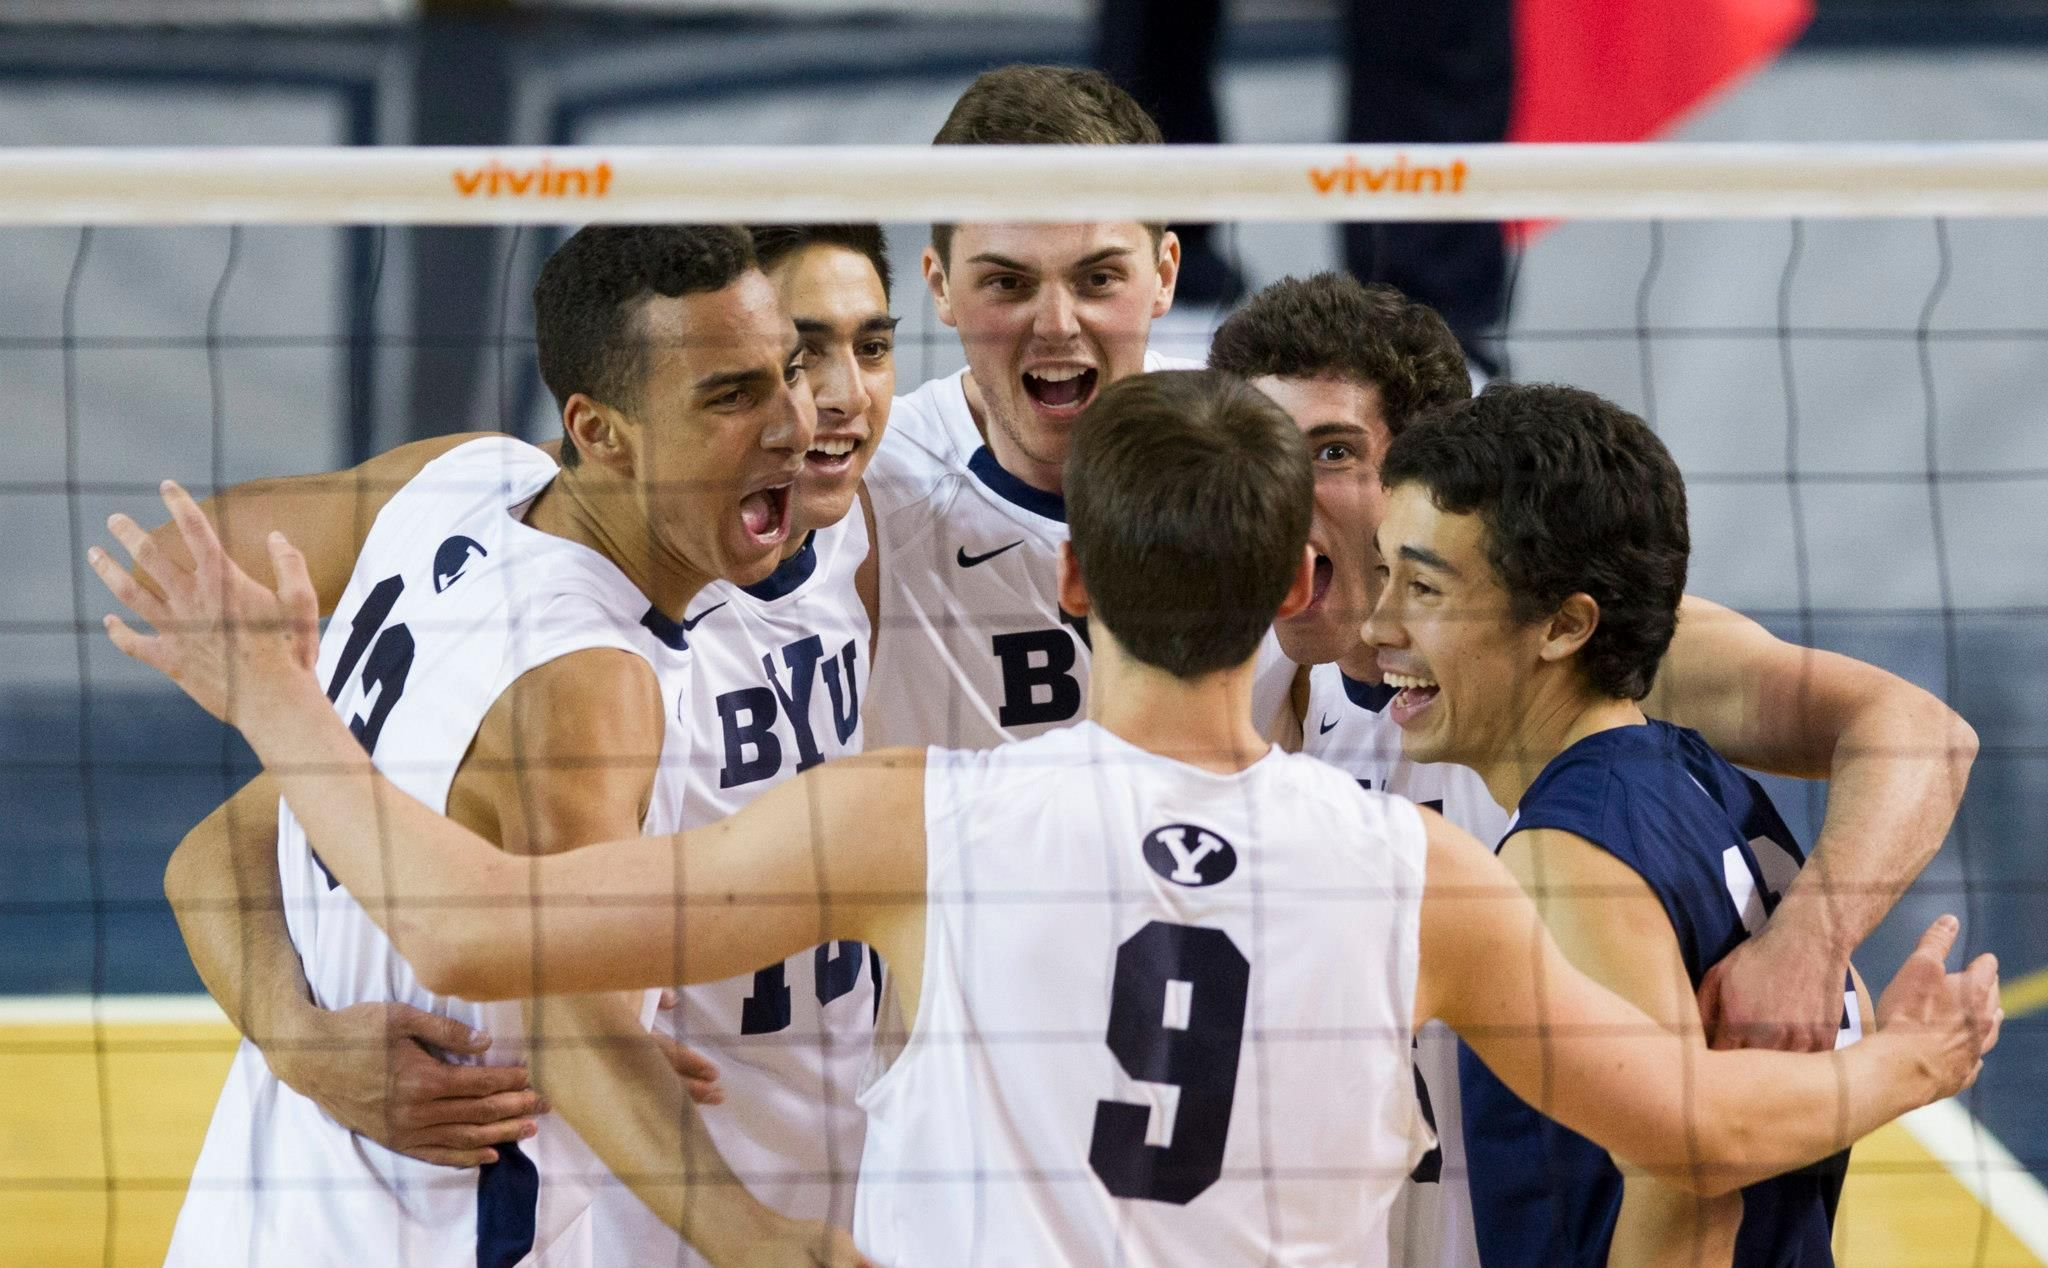 Ben Patch Taylor Sander Russ Lavaja Tyler Heap Josue Rivera Jaylen Reyes Byu Ucla Mpsf Tournament Semifinals Byu Wins 3 Mens Volleyball Ucla My Boys